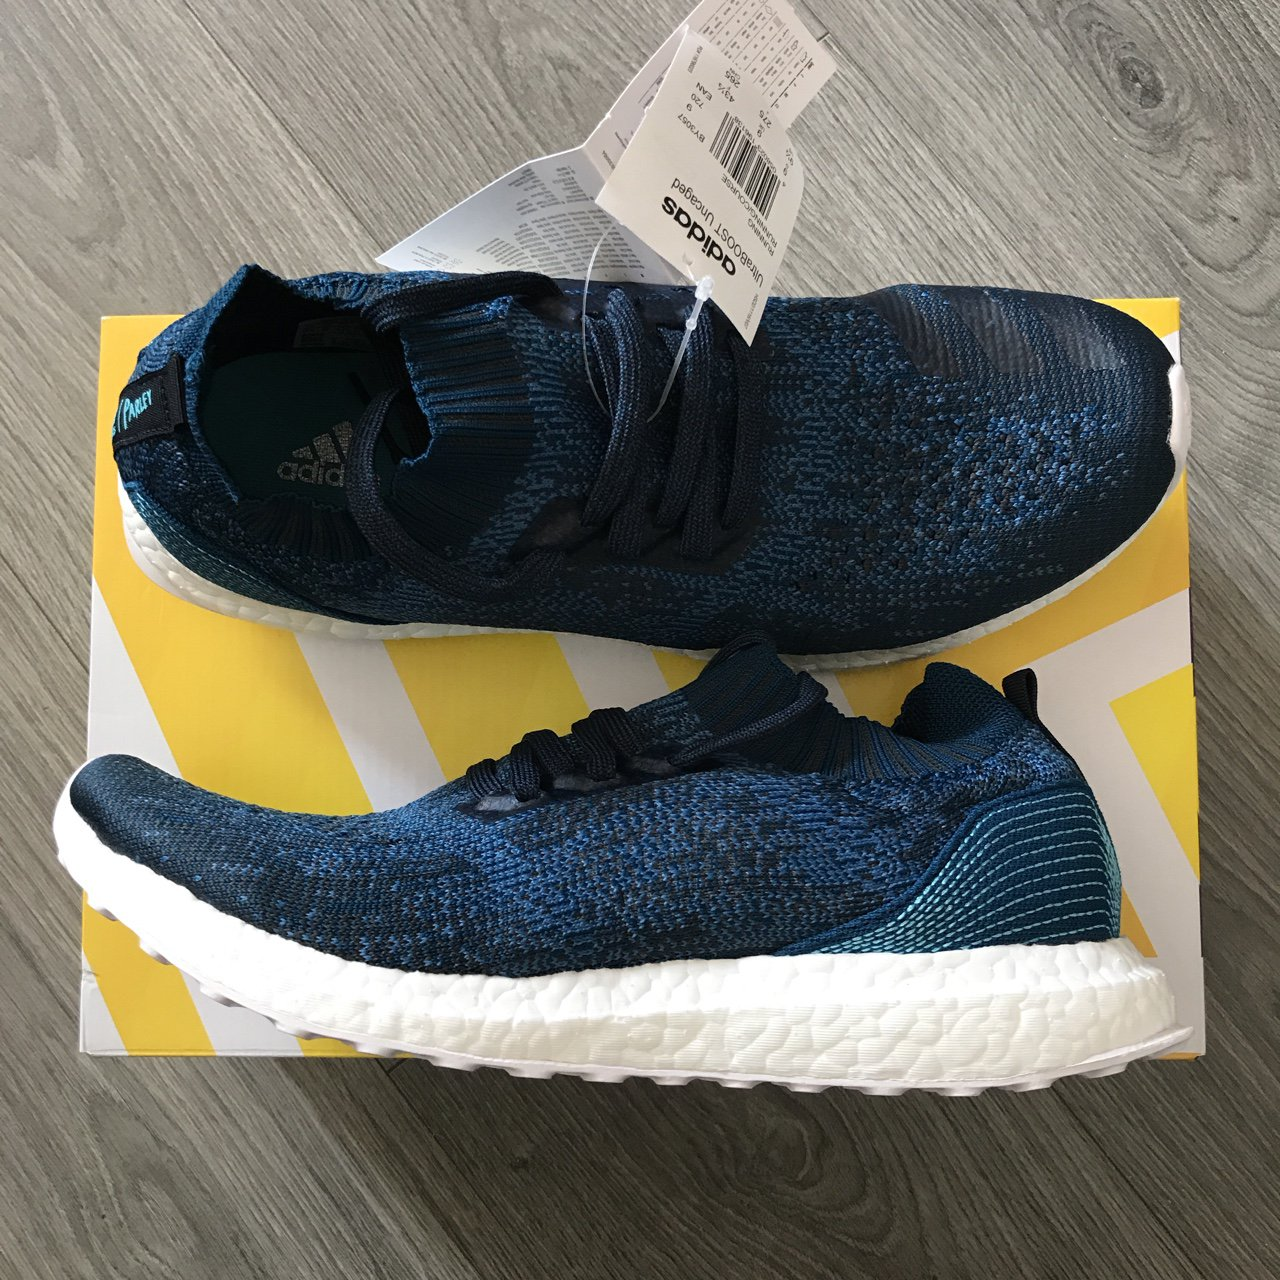 47e407a22 Adidas X Parley Ultra Boost Uncaged. Size U.K. 9 and 10.5 of - Depop